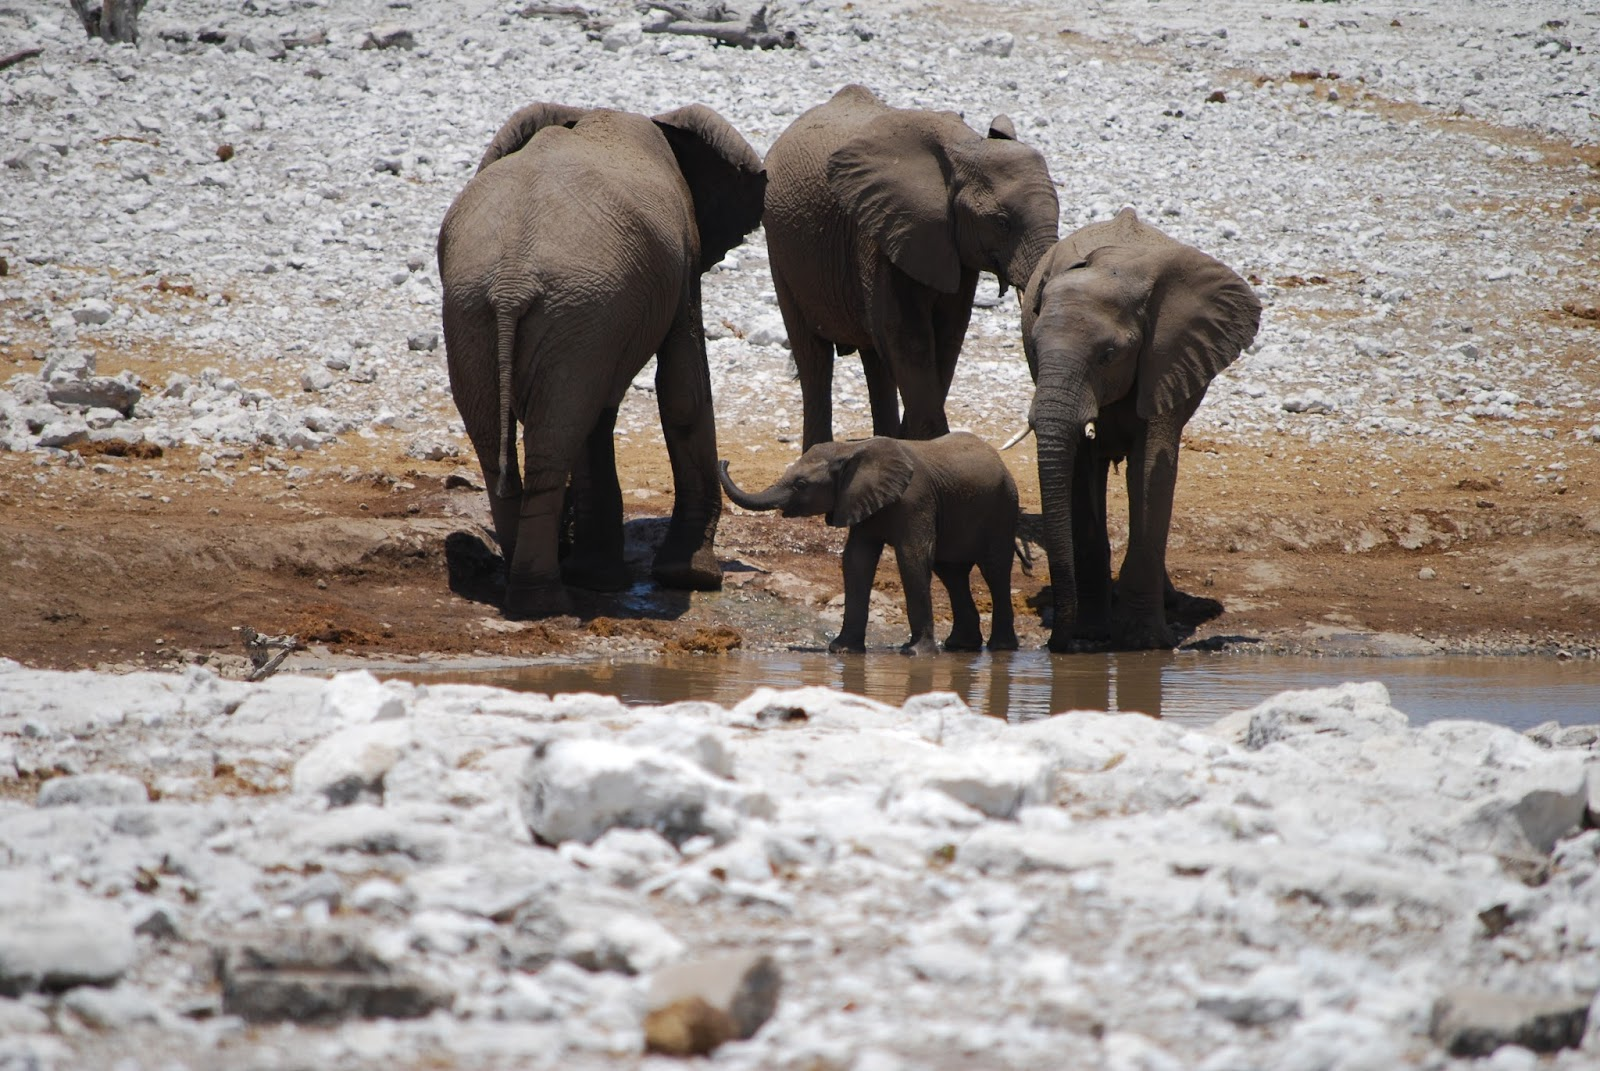 A group of elephants with a baby elephant.